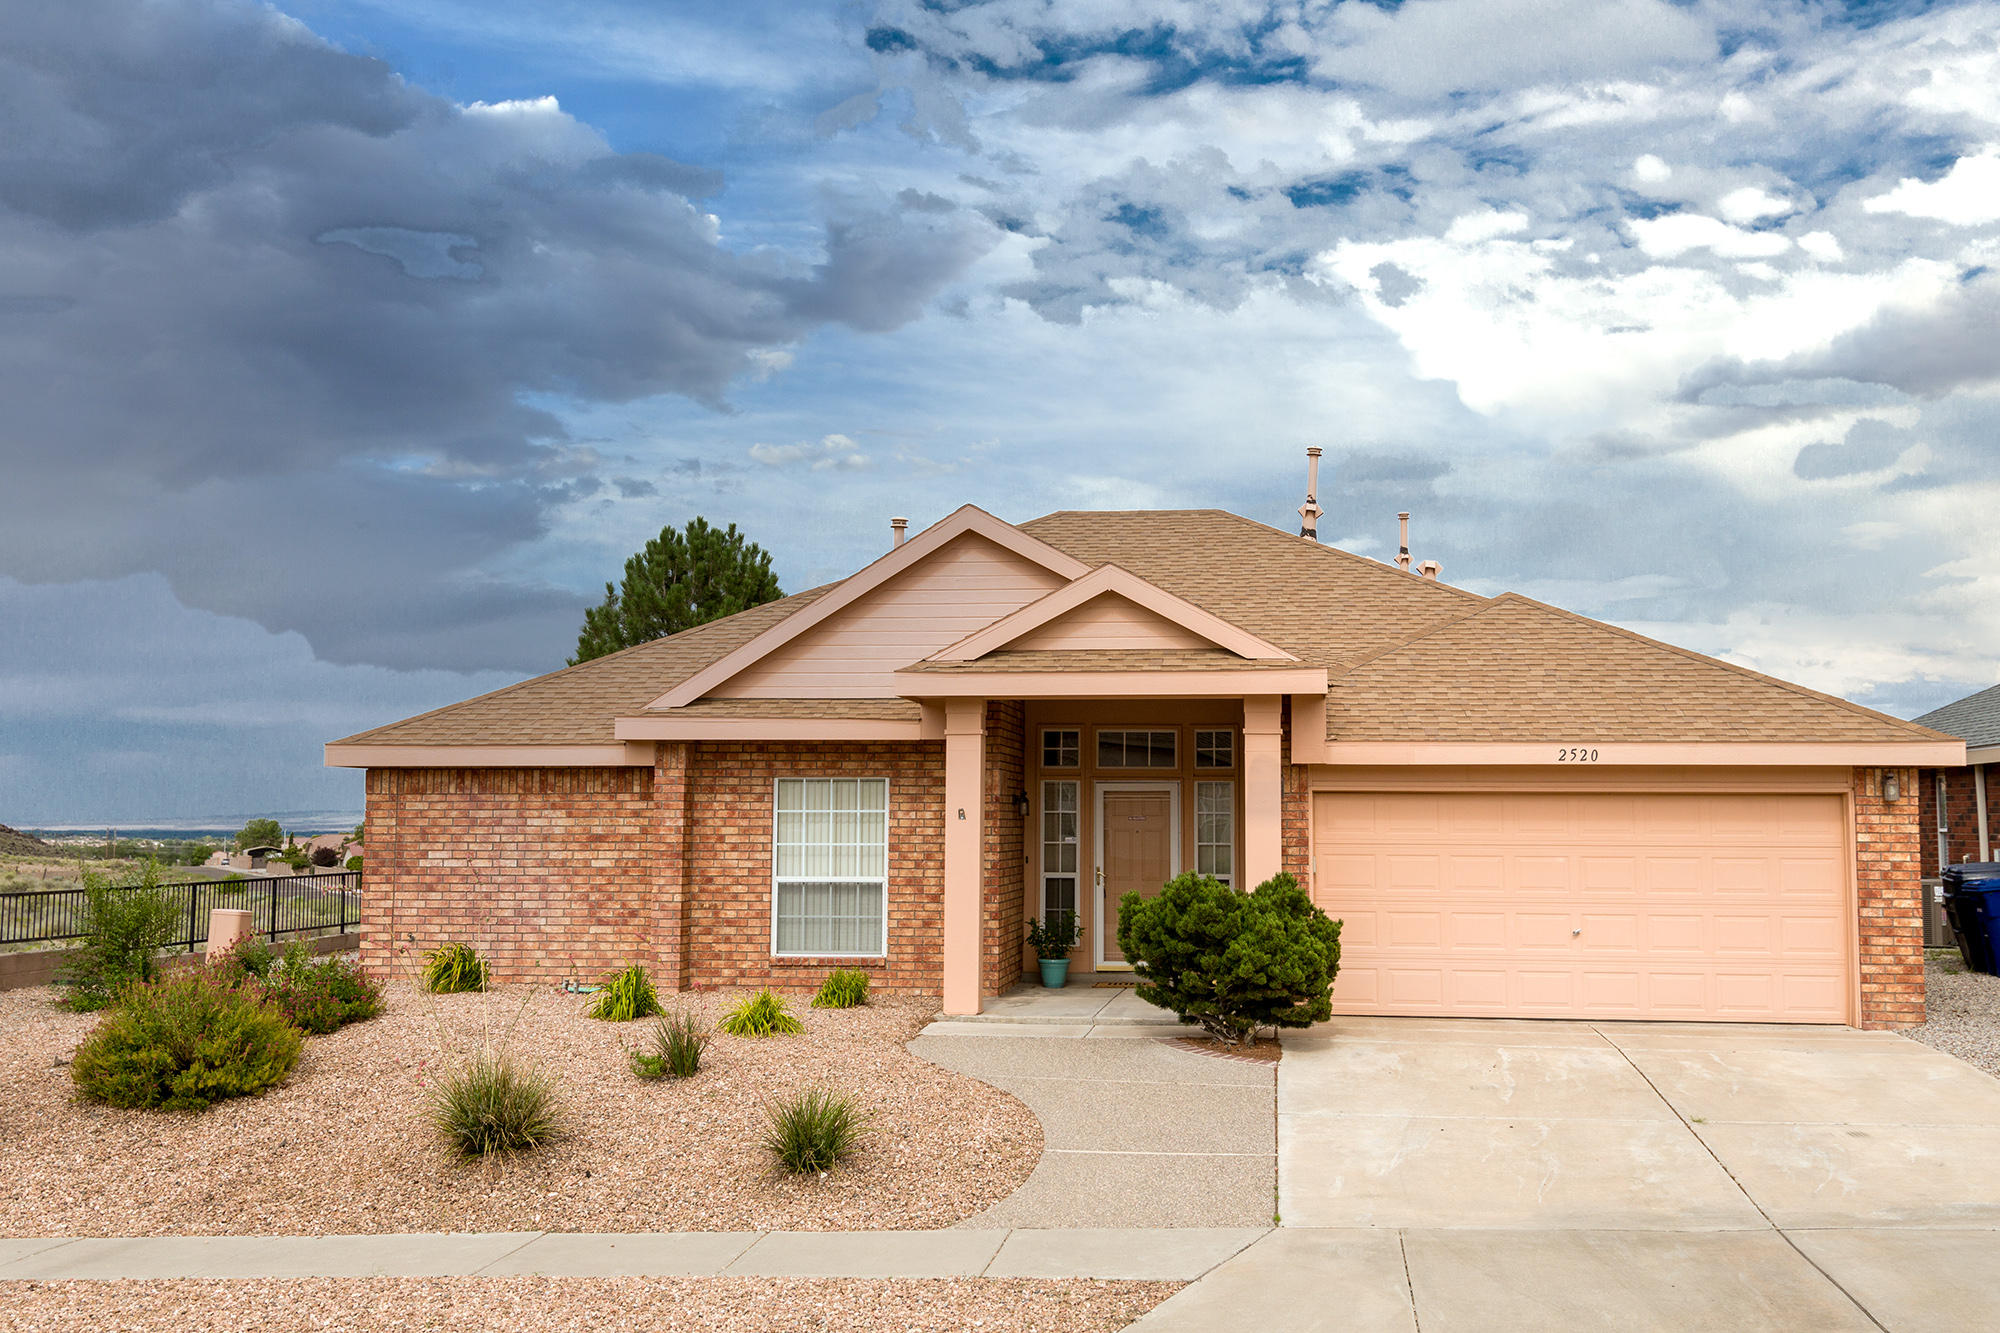 Beautiful brick home on spacious corner lot with views of petroglyphs.   Large covered entry.   Great room features high ceiling, fireplace with attractive tile surround, wall niche, & crown molding. Bright, open kitchen includes all appliances, island, tile countertops, track lighting, ceramic tile flooring  & breakfast nook with  door that opens to covered patio. Split floorplan provides privacy for primary suite, which boasts a sitting area, two walk-in closets, double vanity, garden tub, separate shower & private patio.  Enjoy comfort of  refrigerated air.  Garage w/space for workbench.  Storage shed w/built-in shelves. Washer/dryer included.   Lovely landscaping.  Half wall in 3rd bedroom can be framed in for privacy.  Convenient access to I-40.